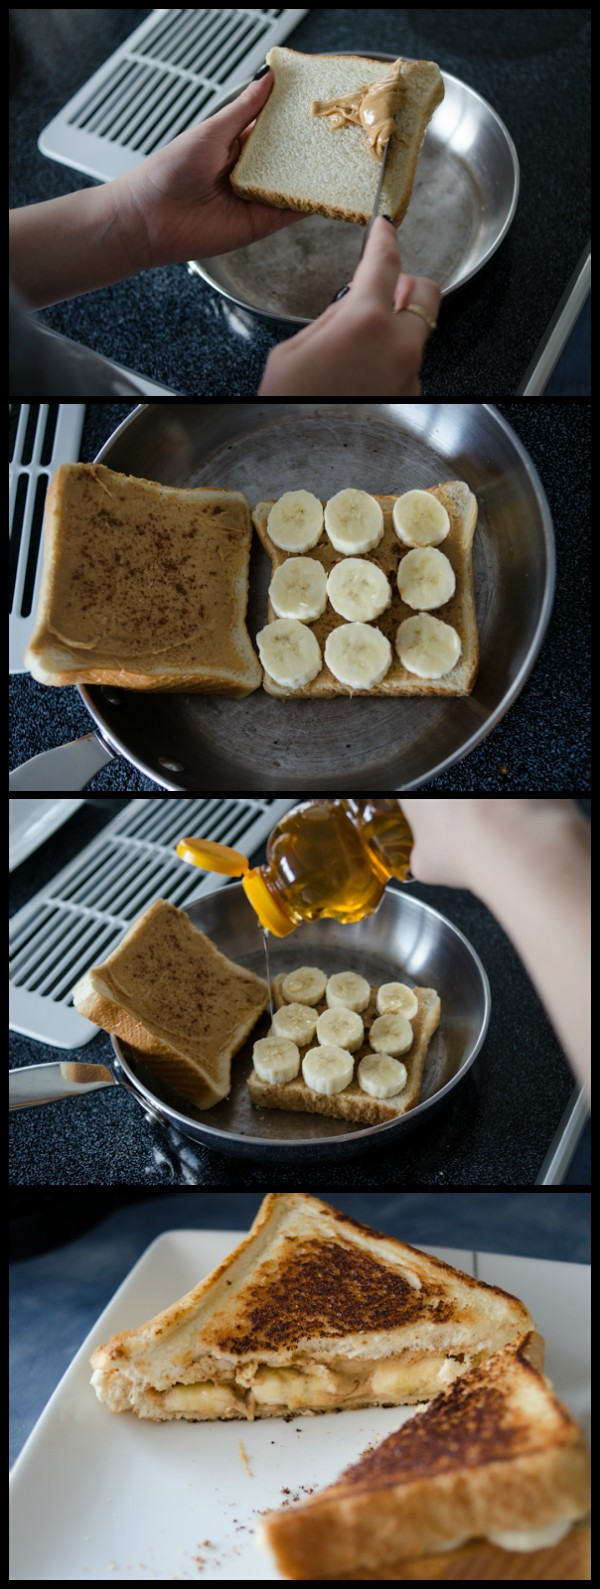 Get the recipe Peanut Butter and Banana Sandwich @recipes_to_go